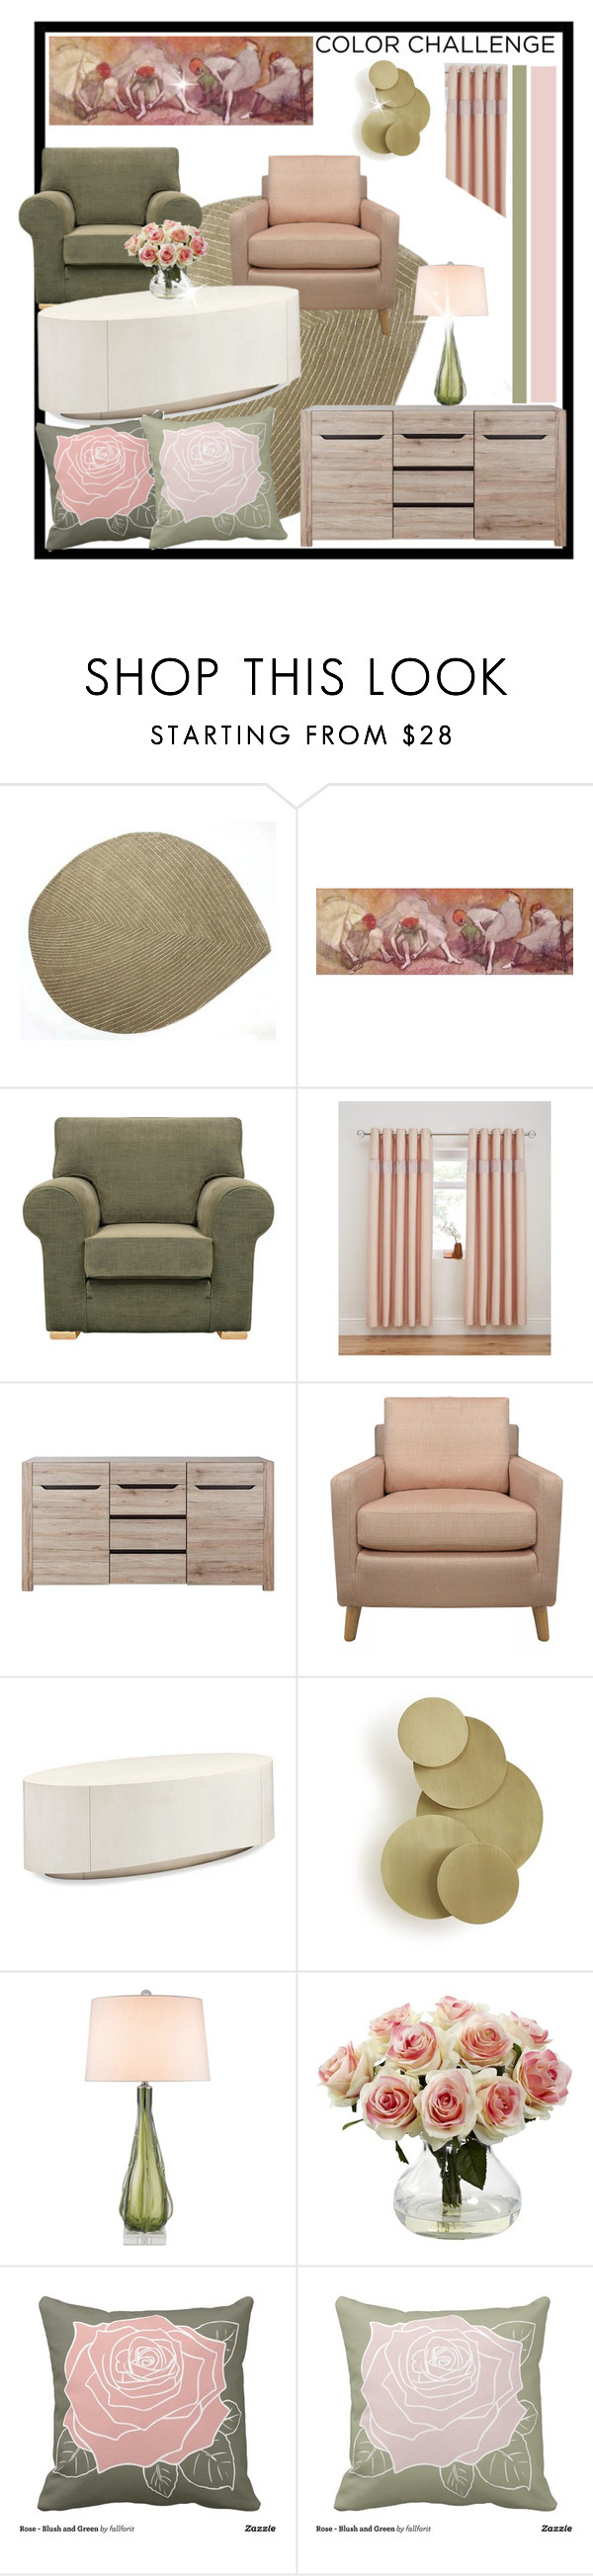 """""""Green and Blush"""" by fallforit ❤ liked on Polyvore featuring interior, interiors, interior design, home, home decor, interior decorating, nanimarquina, Zephyr, Nearly Natural and colorchallenge"""